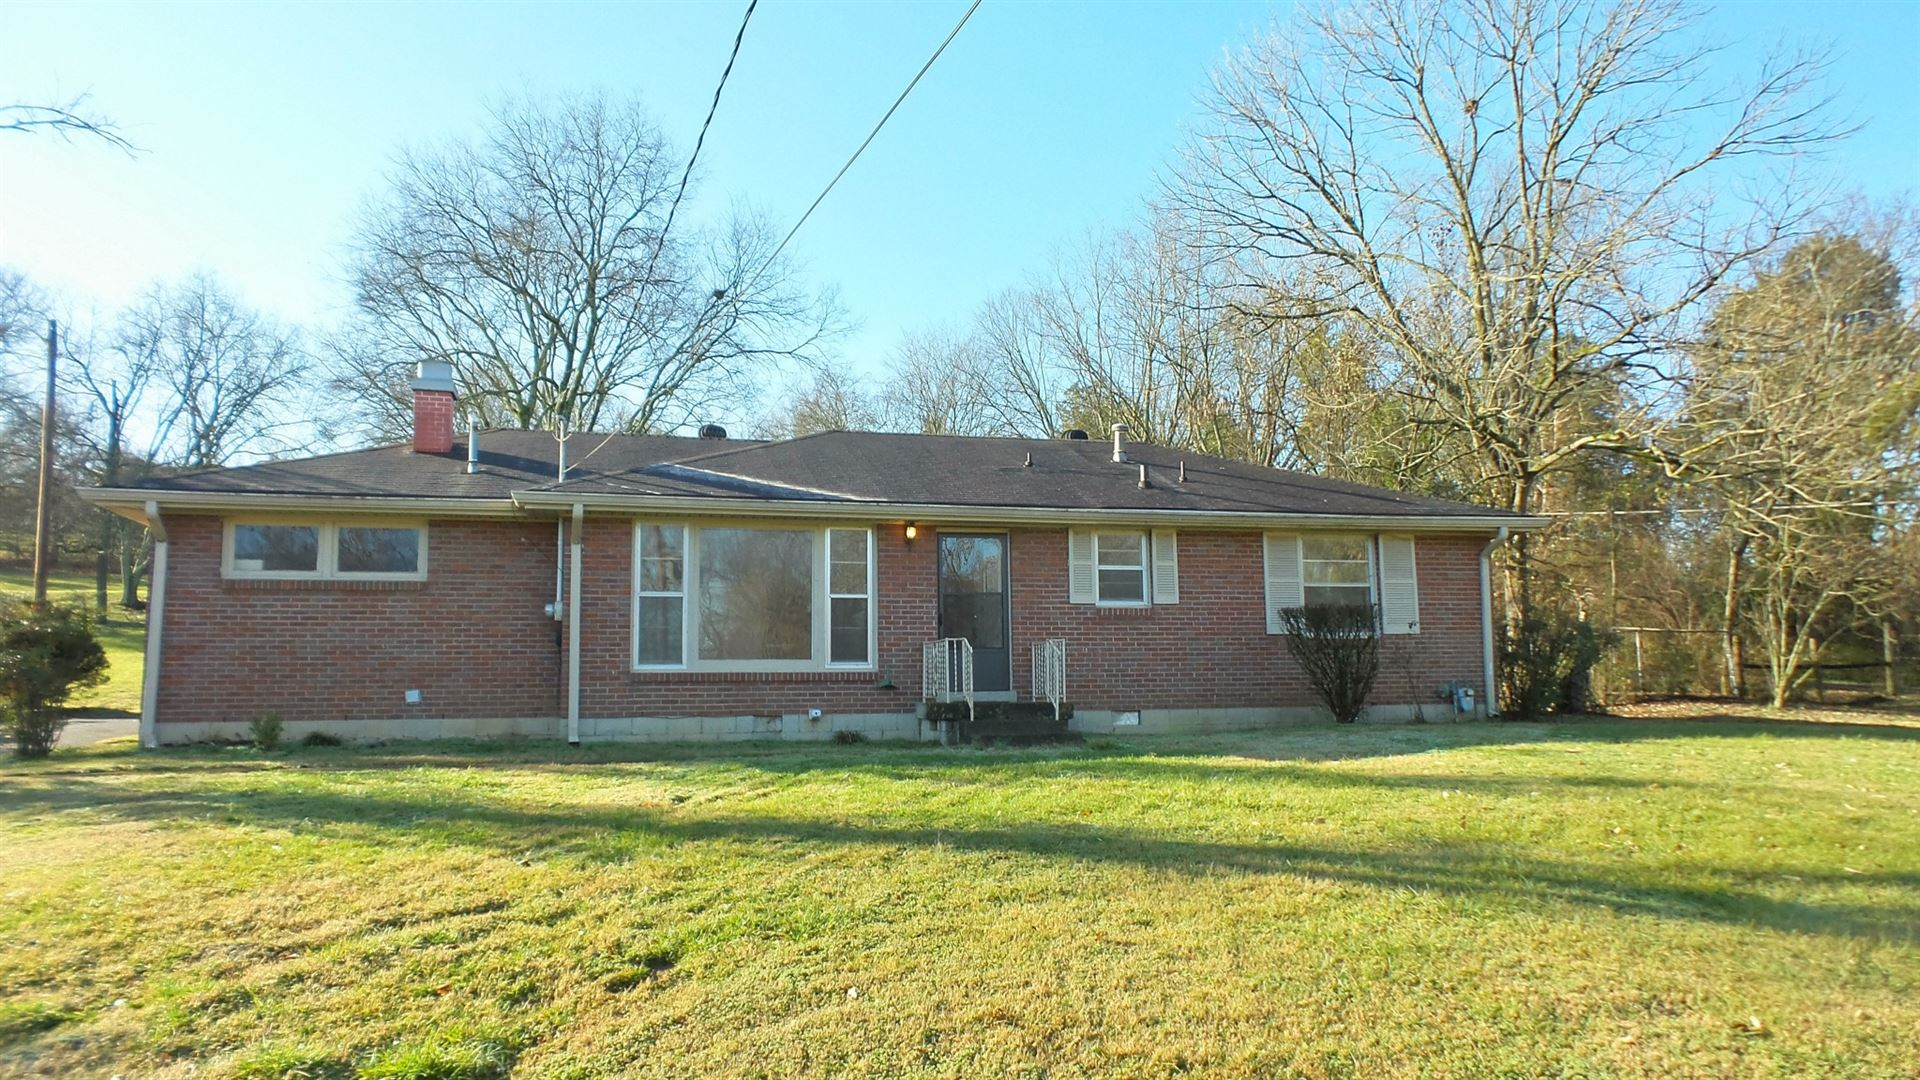 334 Ewing Dr, Nashville, TN 37207 - MLS#: 2111740